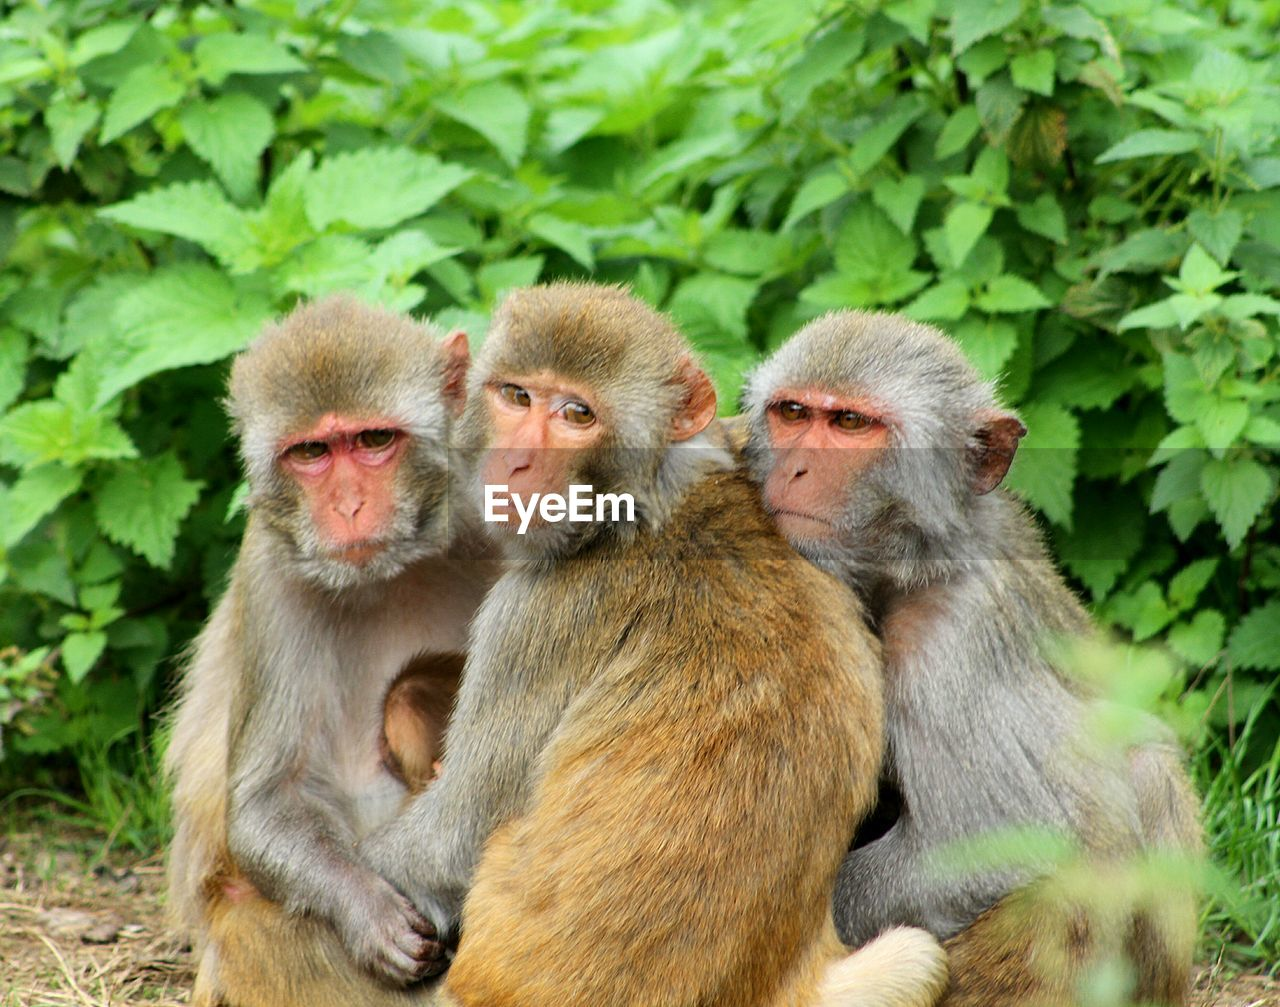 primate, group of animals, mammal, animals in the wild, animal wildlife, togetherness, day, young animal, vertebrate, no people, sitting, focus on foreground, animal family, nature, portrait, looking at camera, outdoors